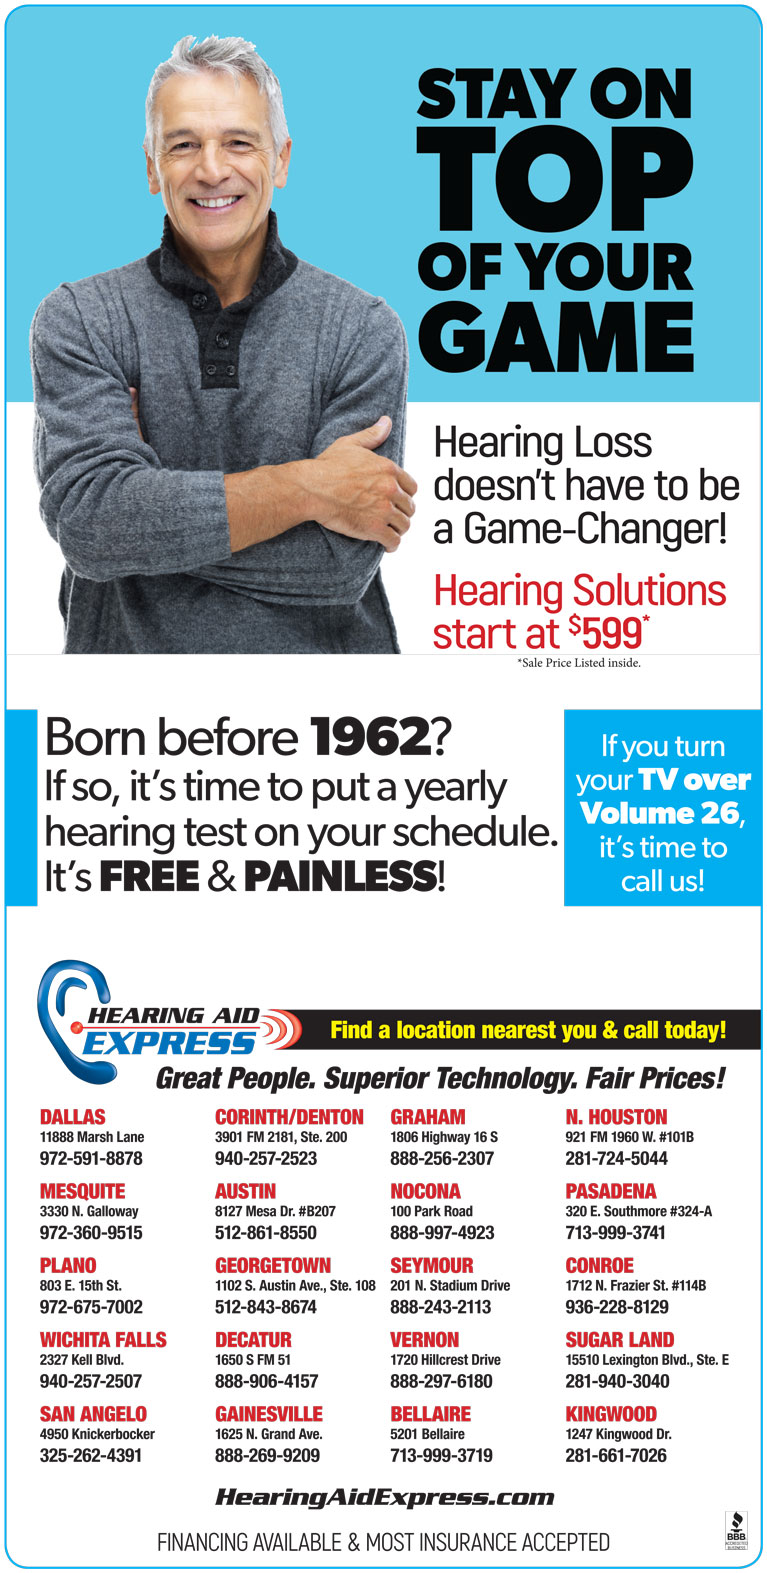 Special Offers & FREE Hearing Services - Hearing Aid Express